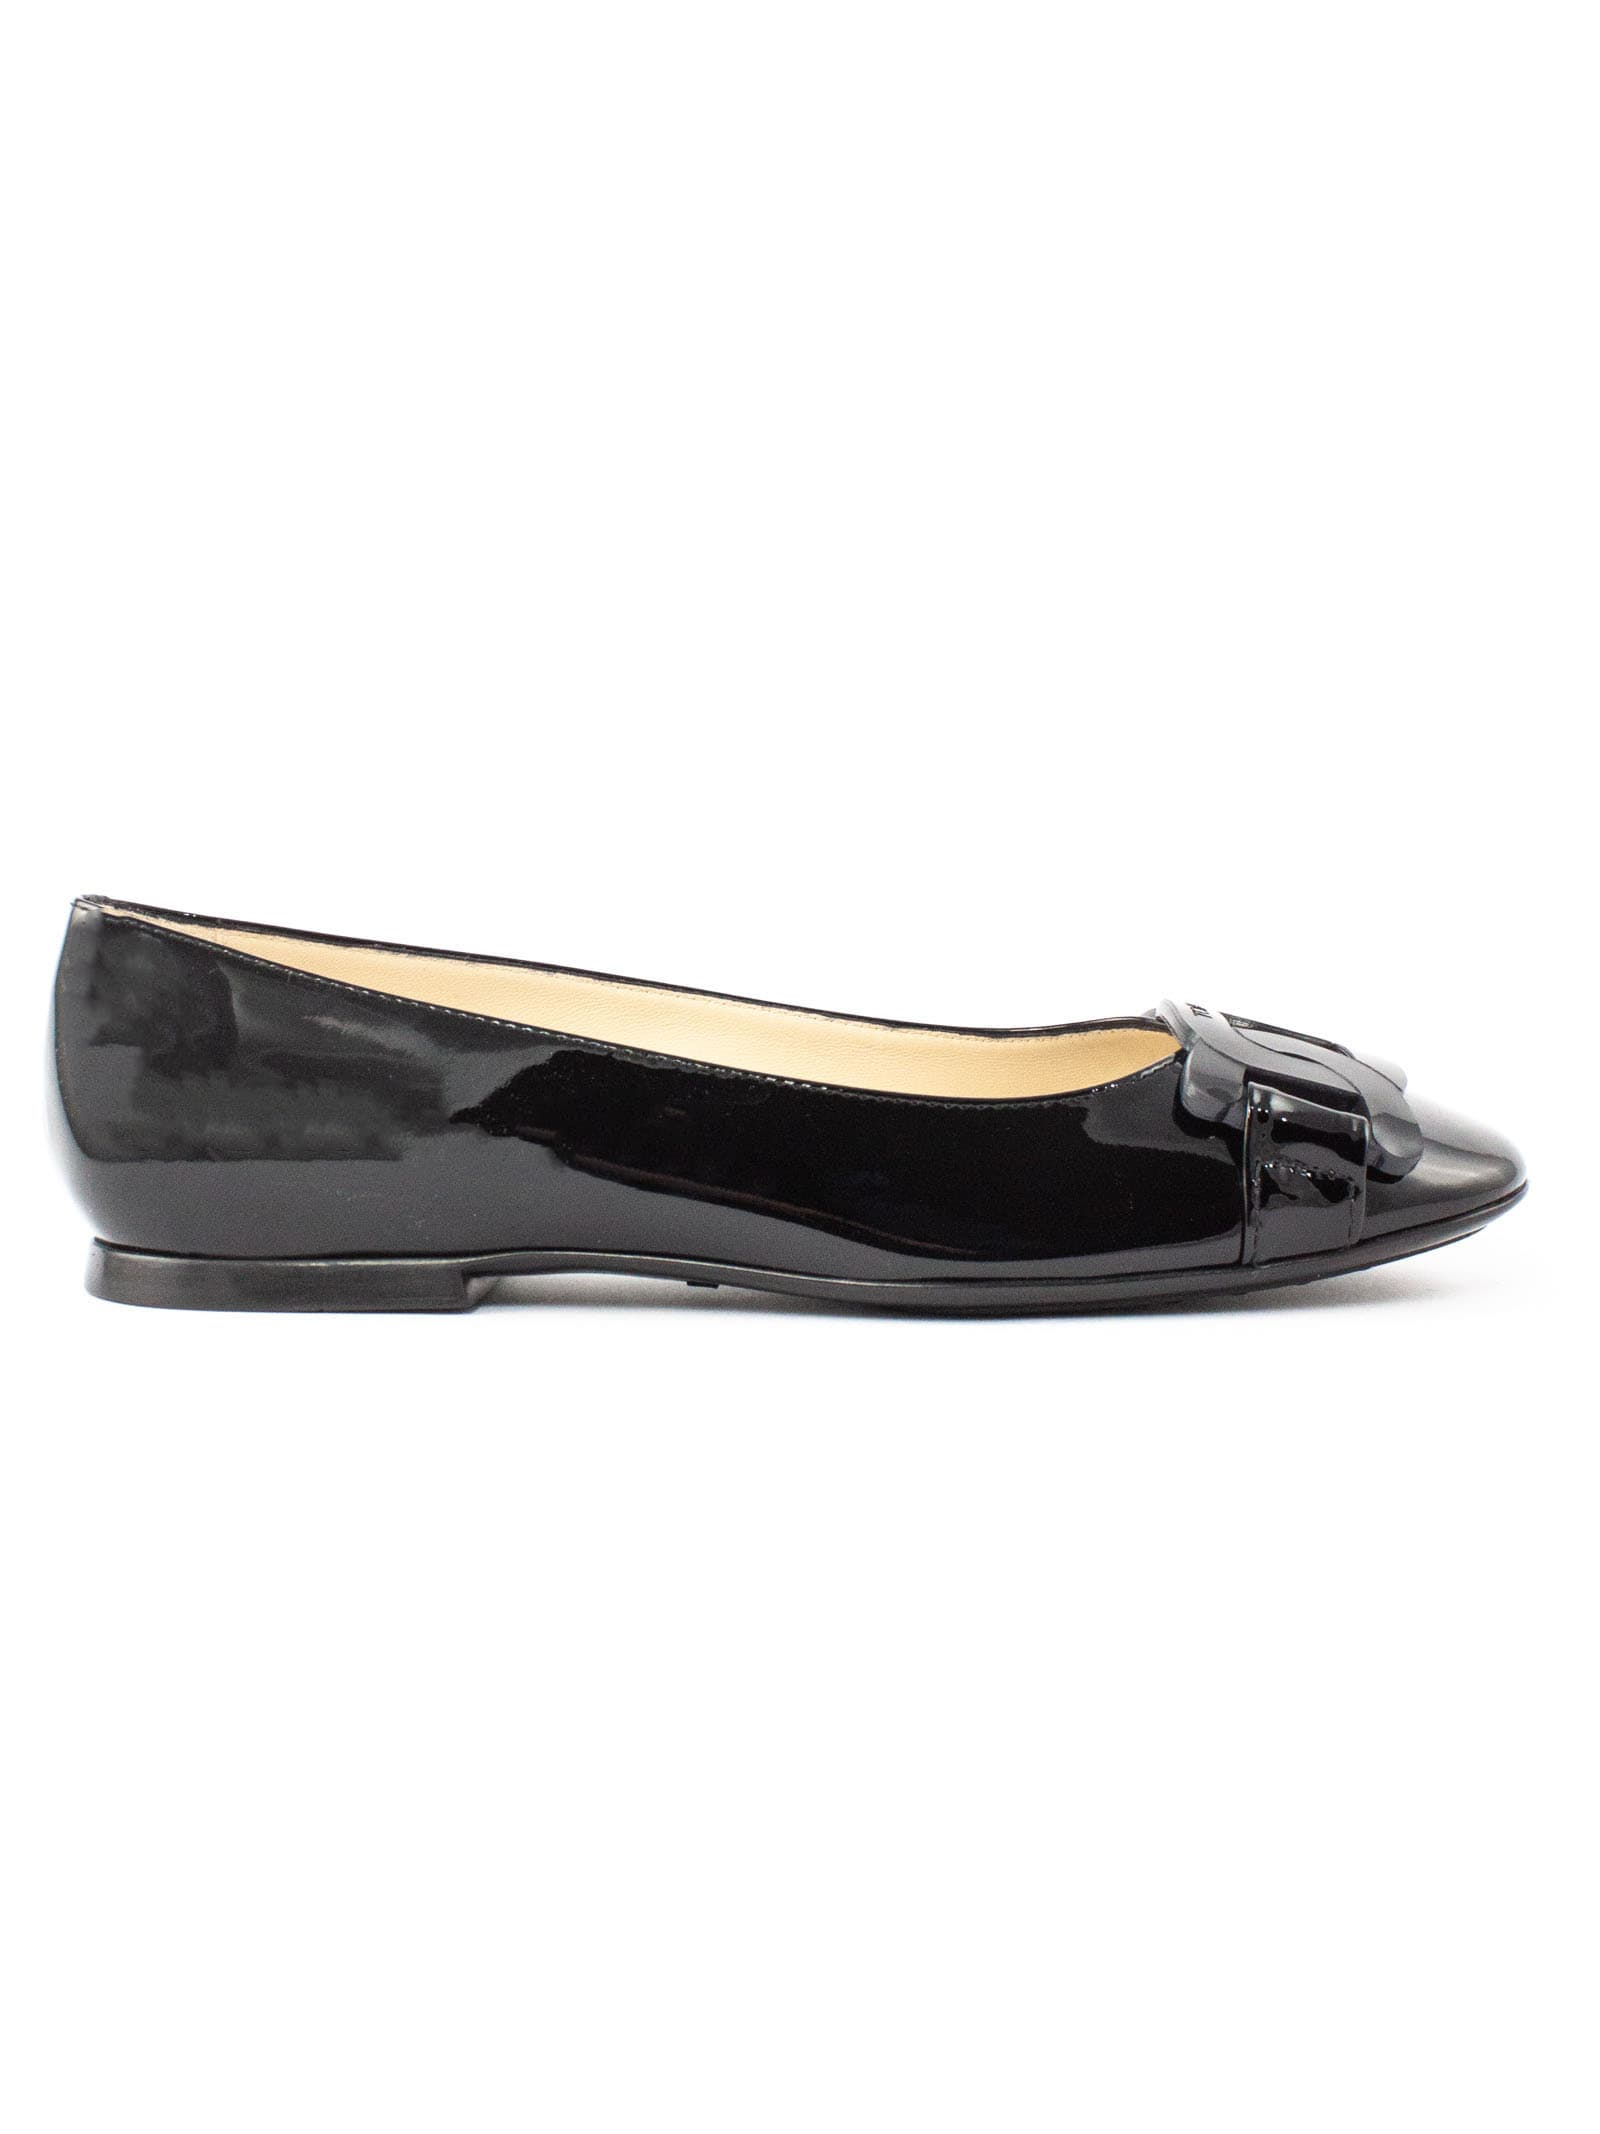 Tods Ballerinas With Black Patent Leather